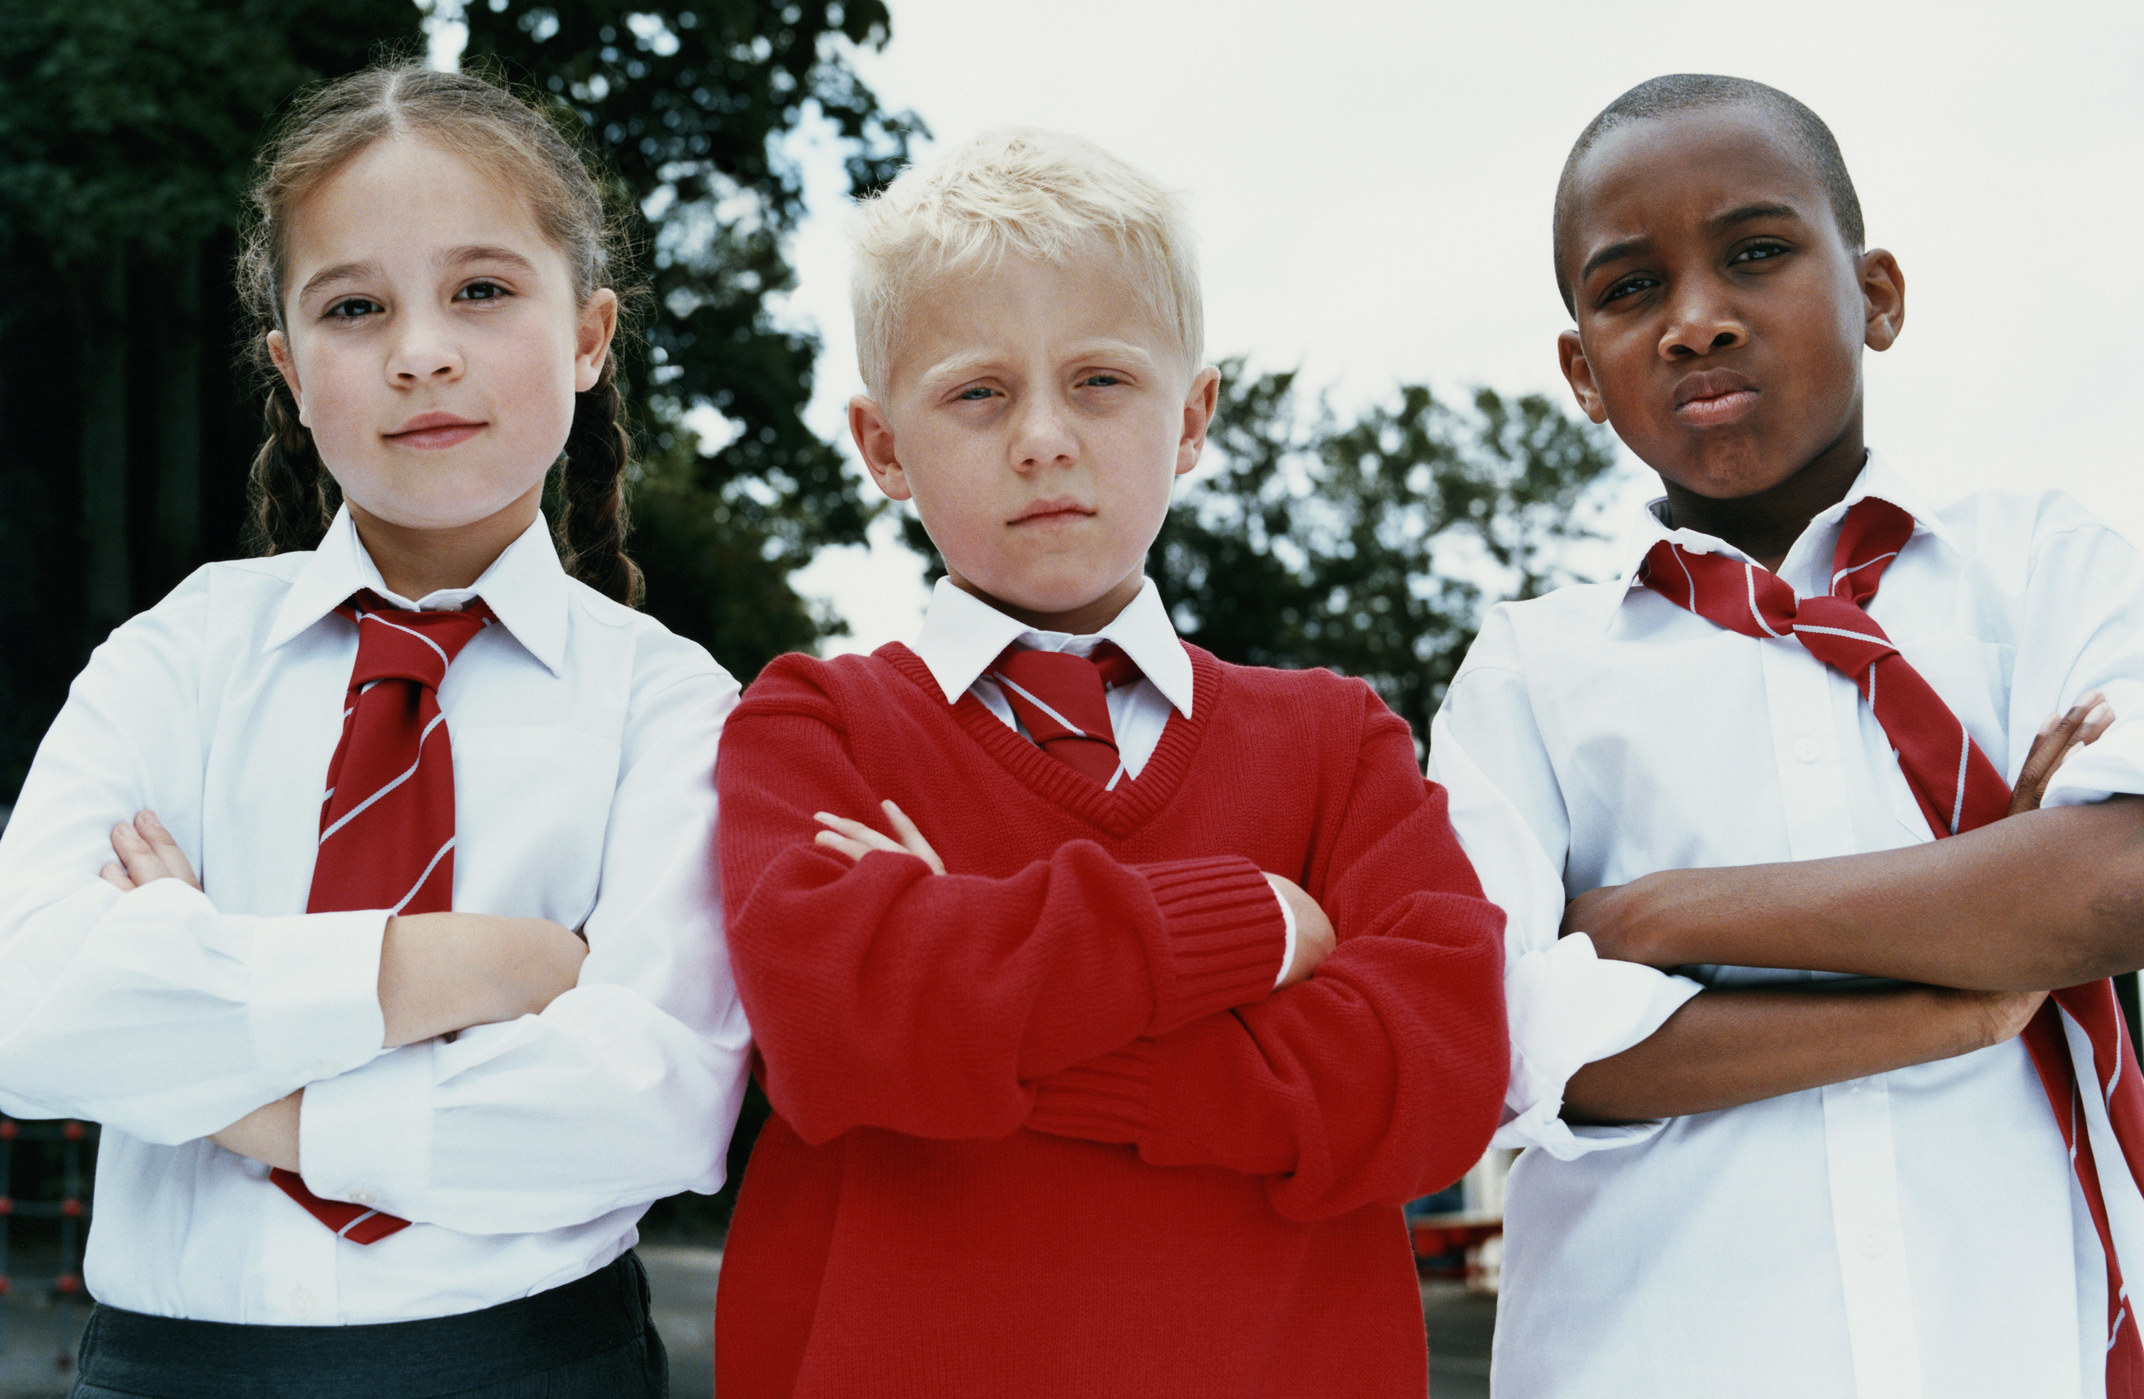 Portrait of three primary school children standing with their arms folded, scowling at the camera and wearing uniforms with ties